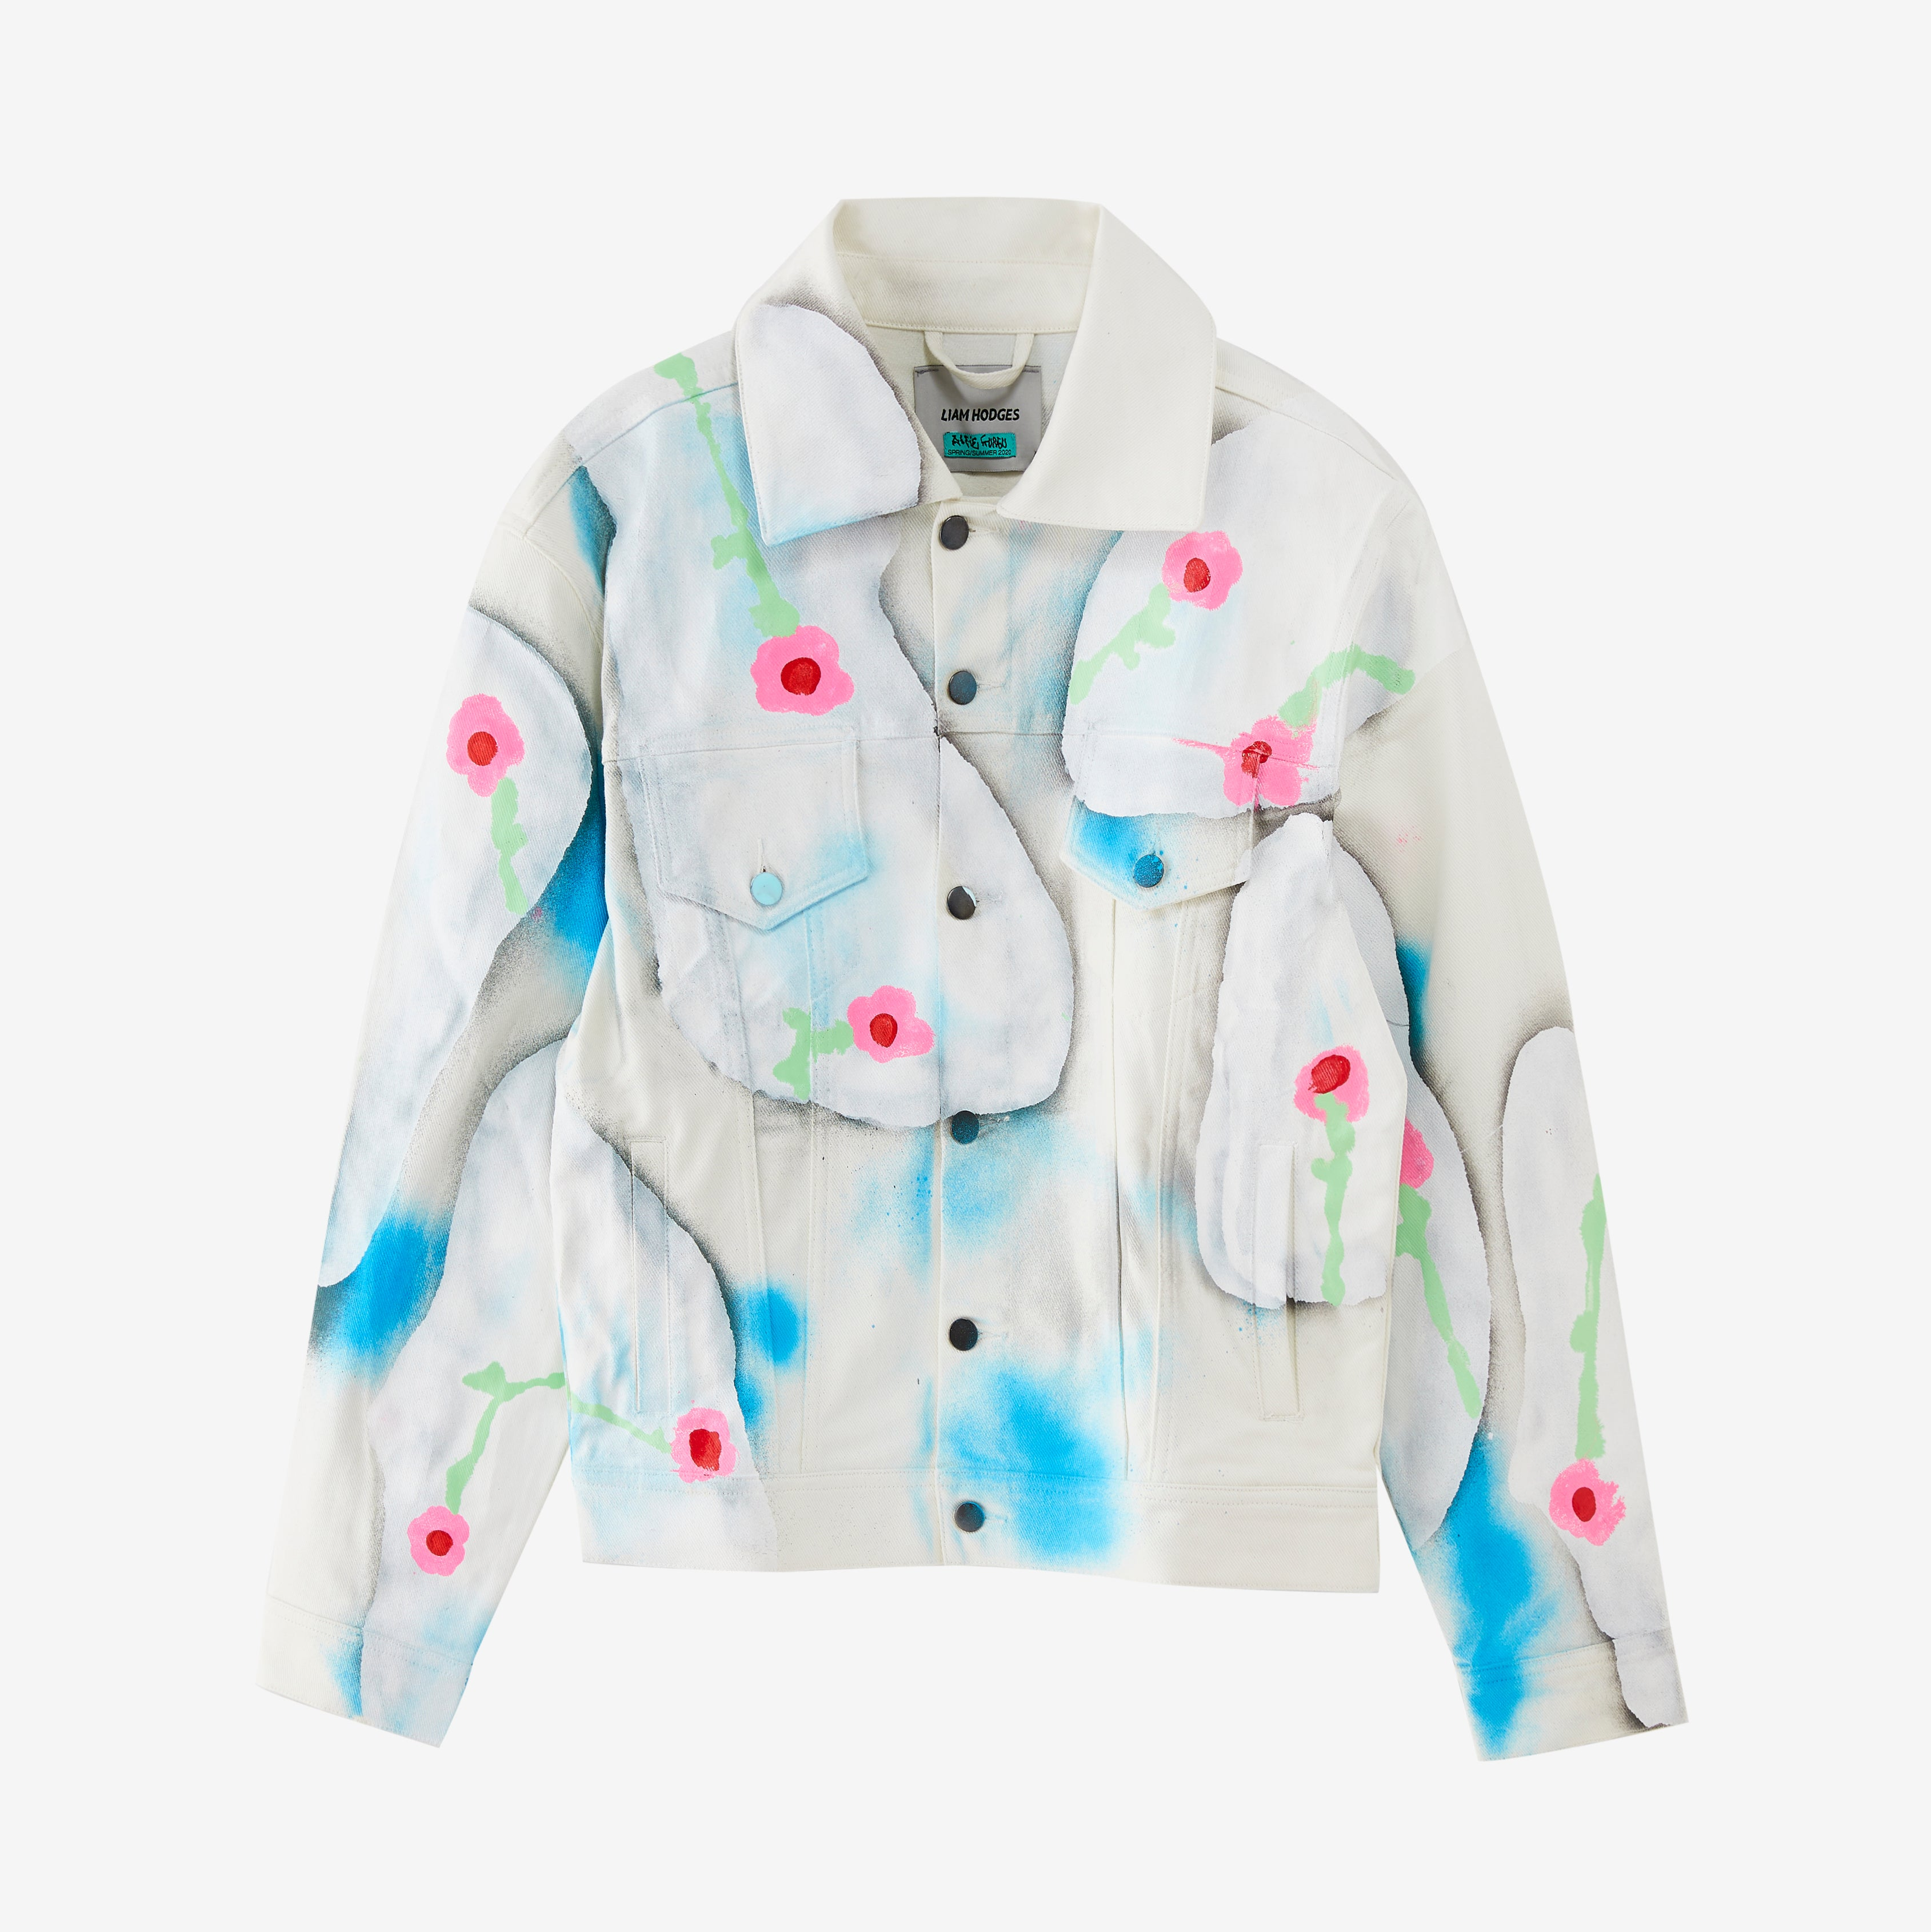 LIAM HODGES ALFIE HAND PAINTED JACKET - Trendy Maker